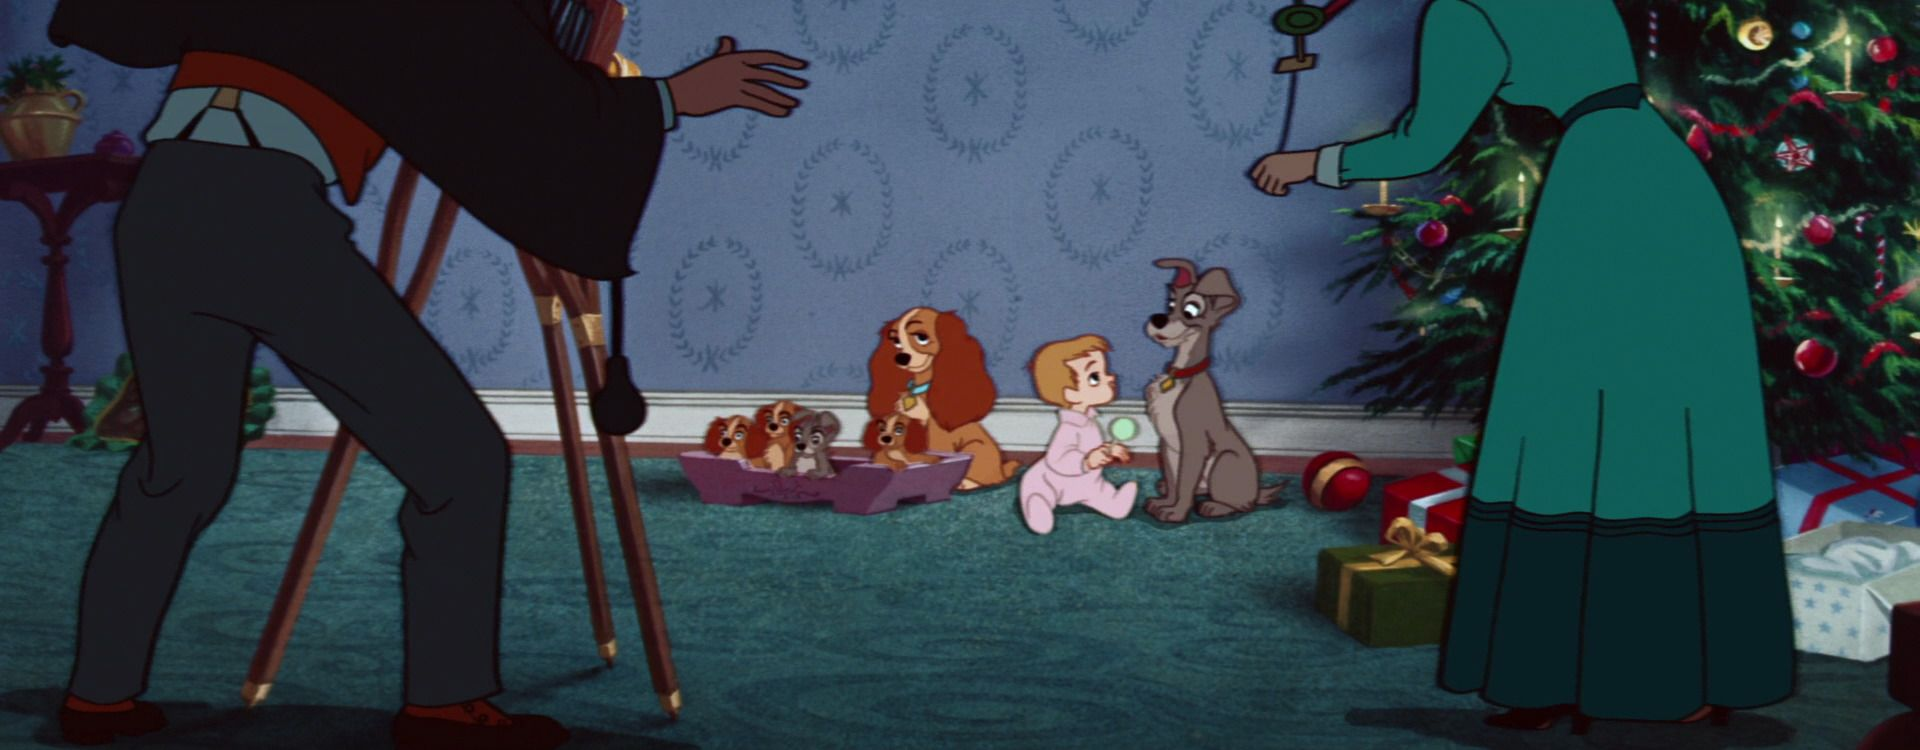 Lady And The Tramp 1955 Disney Screencaps Lady And The Tramp Disney Ladies Classic Disney